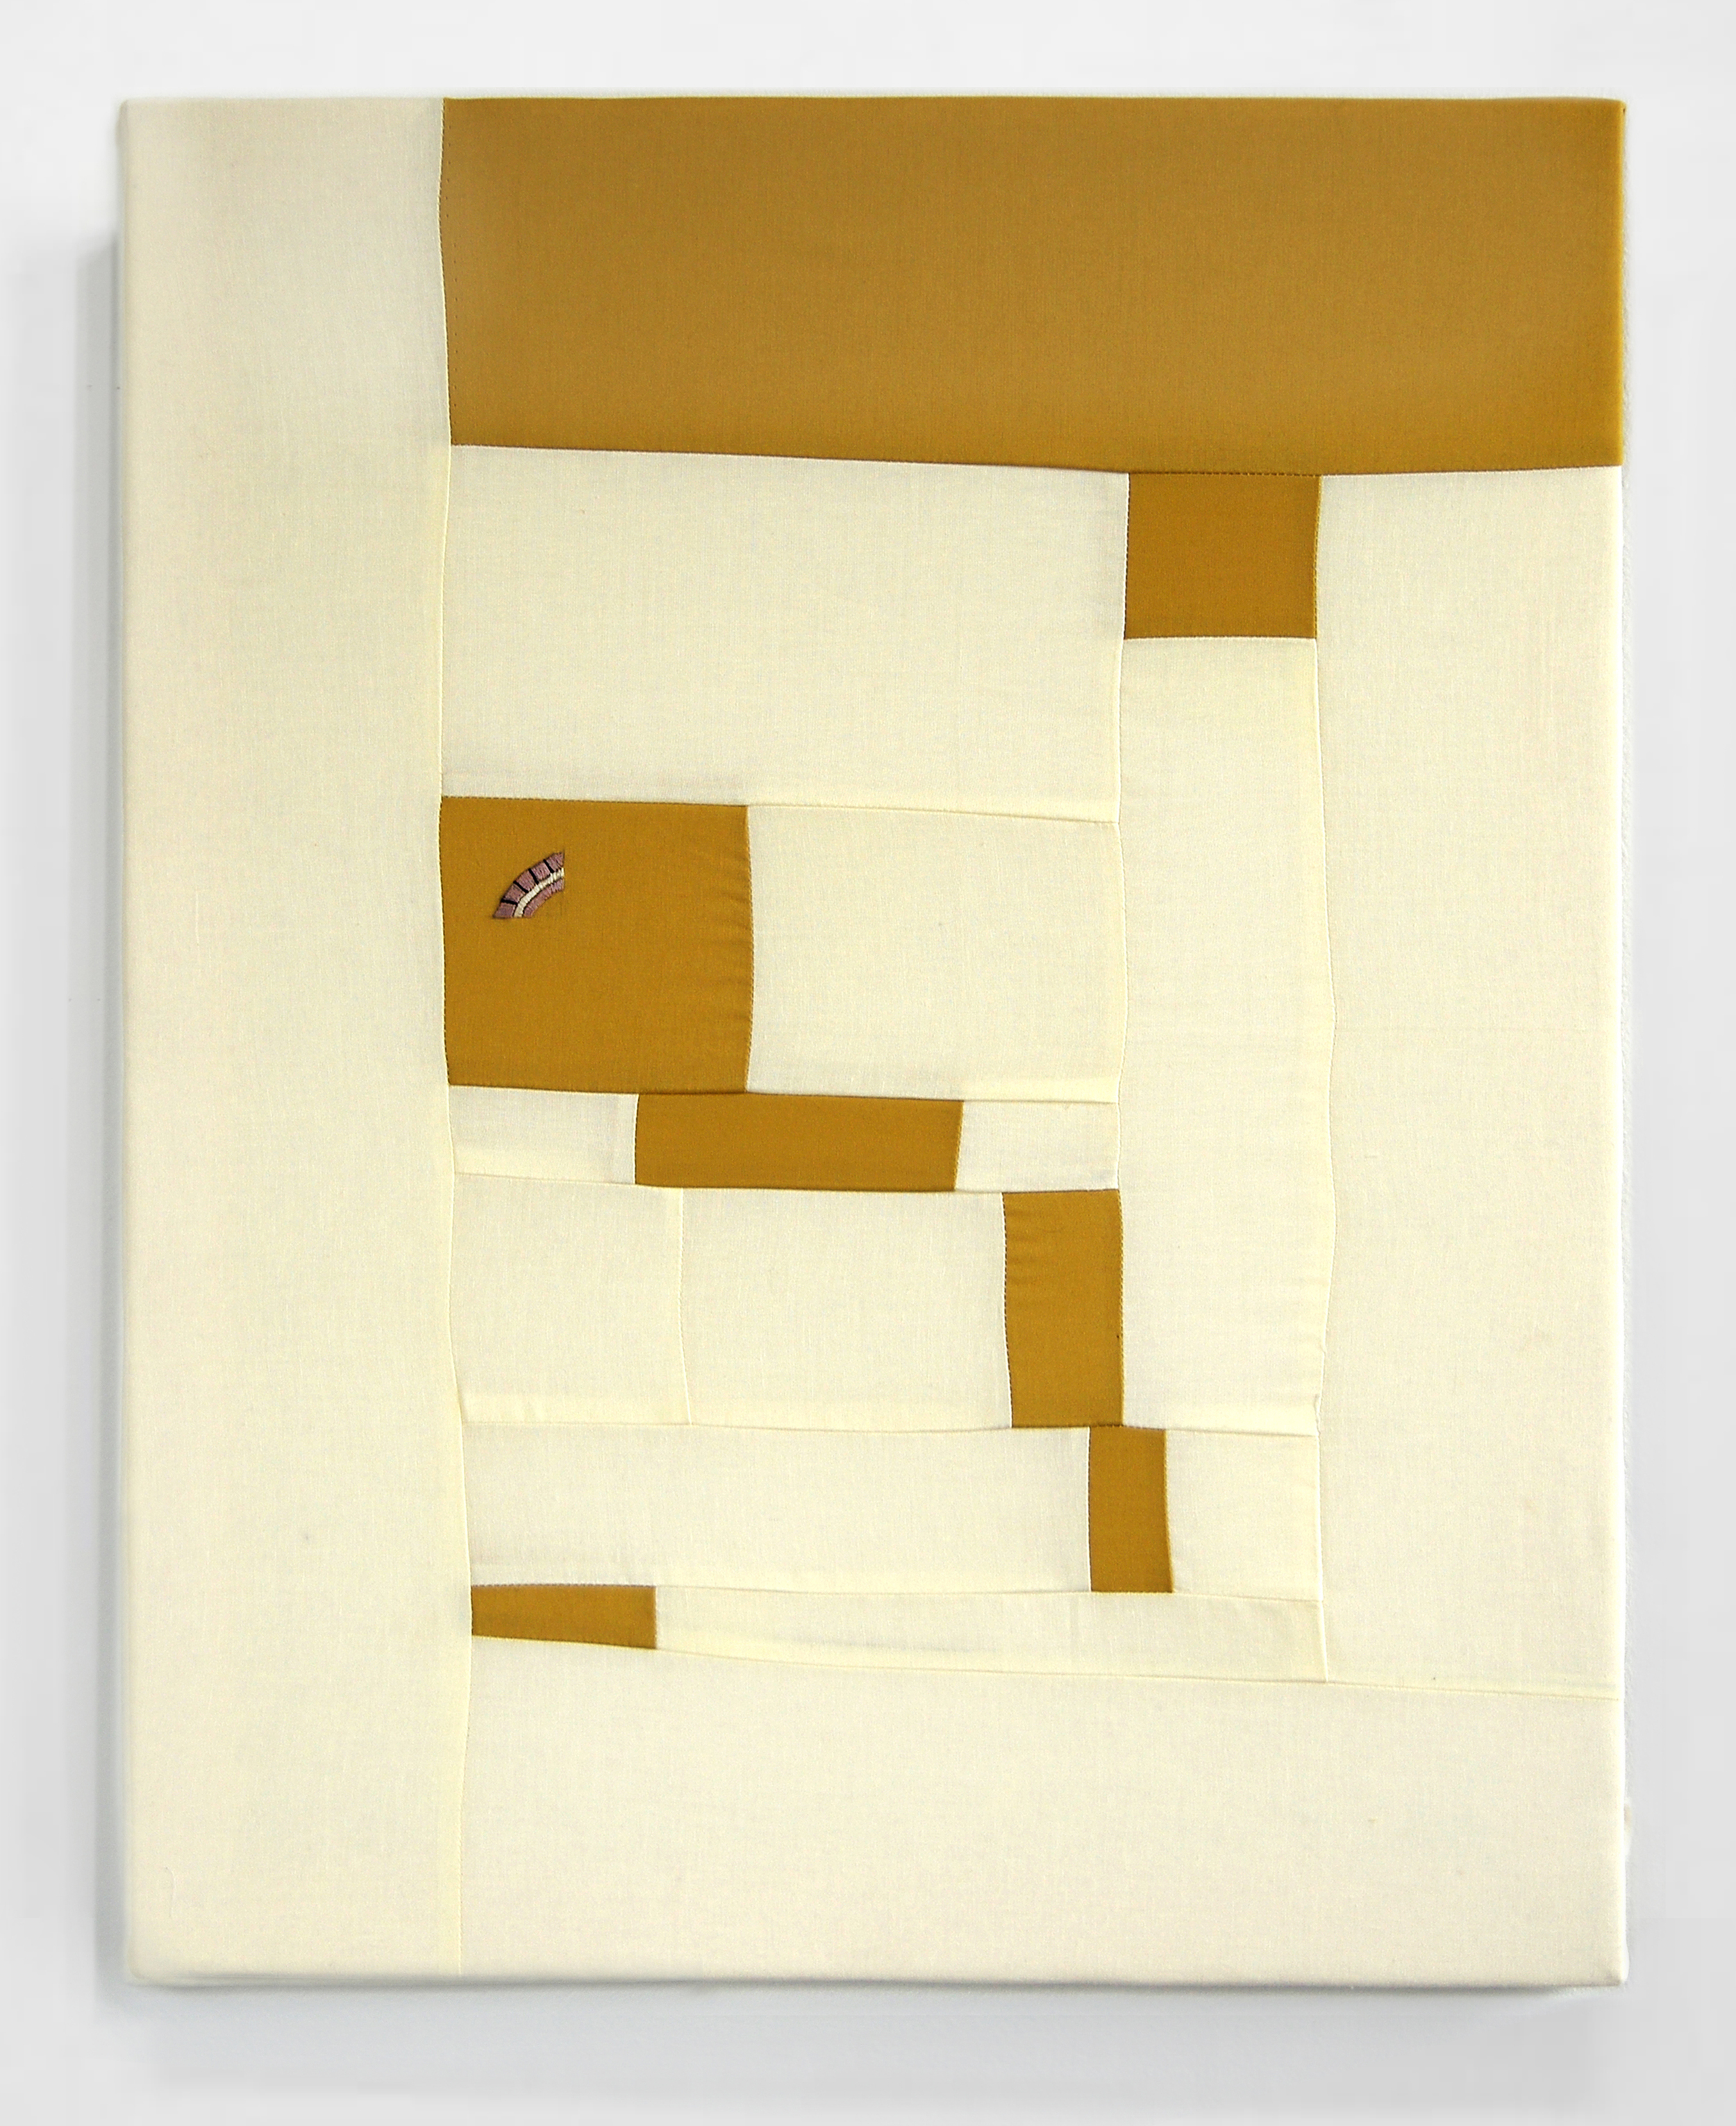 FLOWS + GAPS (OCHRE)   cotton quilt with embroidery on frame   20 x 25 inches,  2014